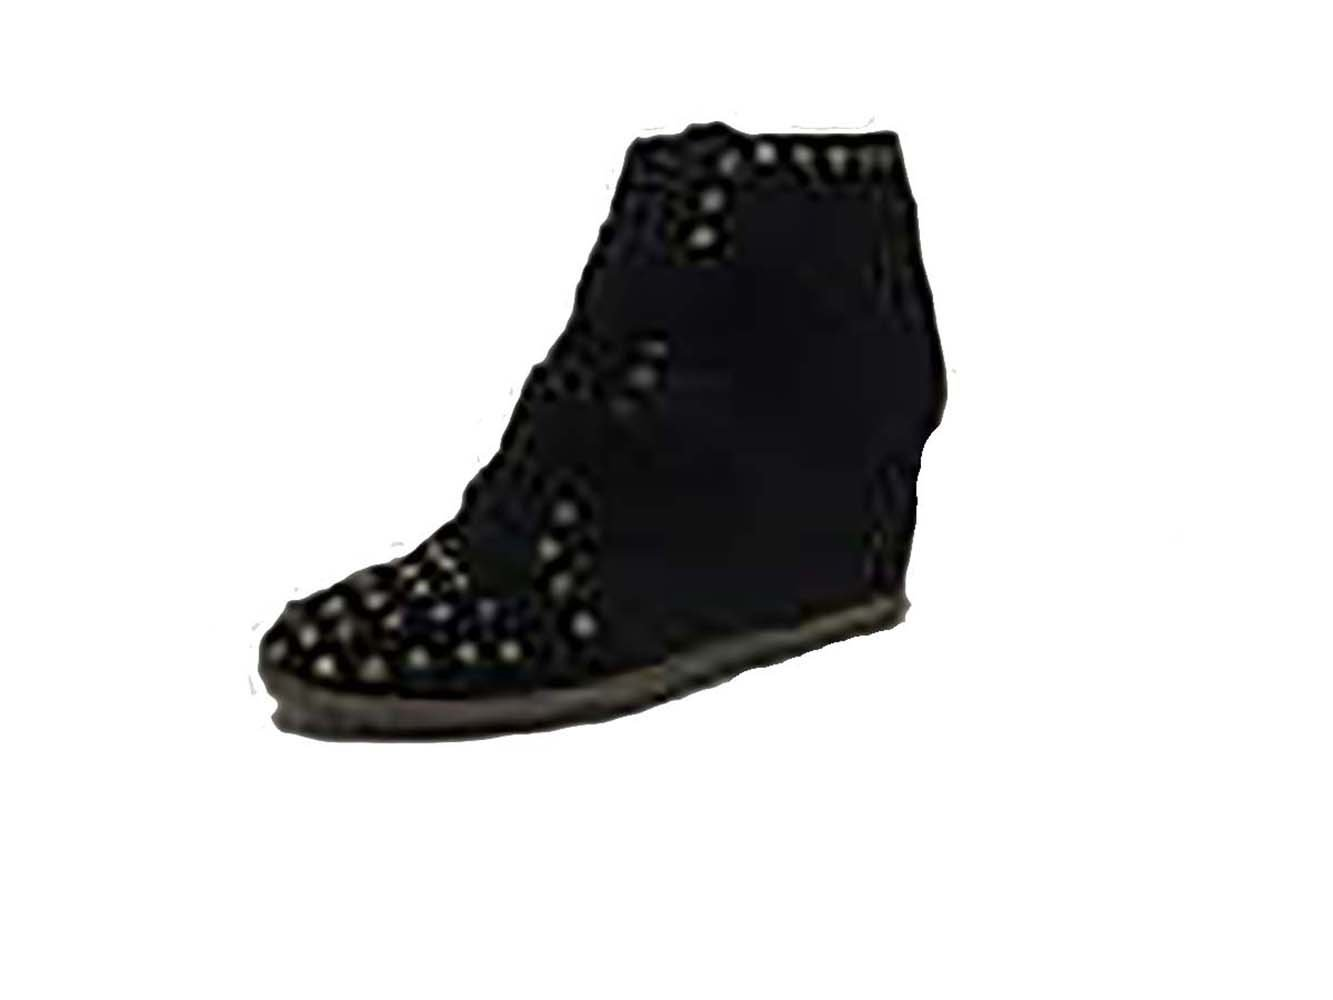 Be&d Maison Dumain Hey Stud Wedge Women .Black Canvas with Gold. - $54.99